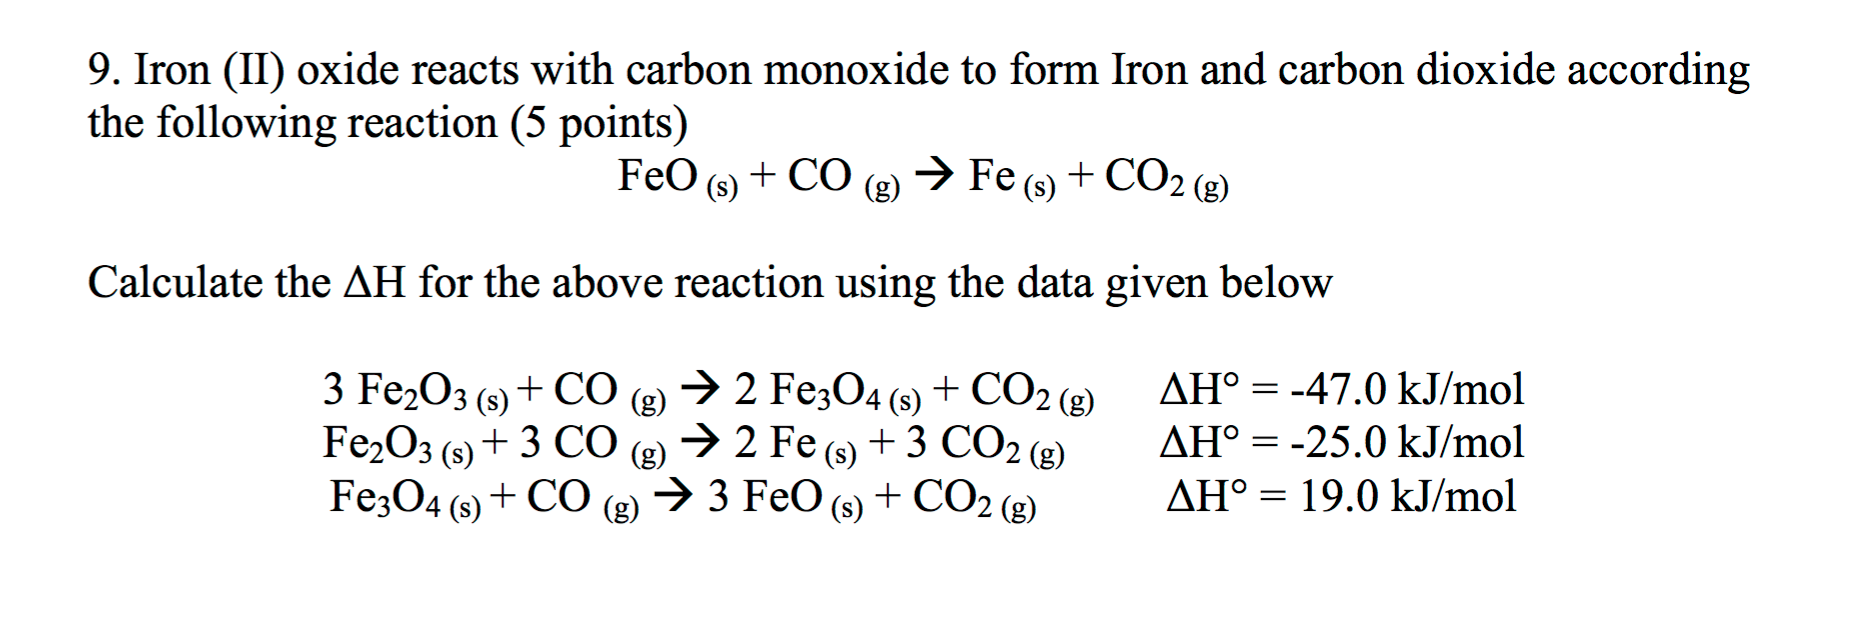 Chemistry archive april 13 2016 chegg iron ii oxide reacts with carbon monoxide to for buycottarizona